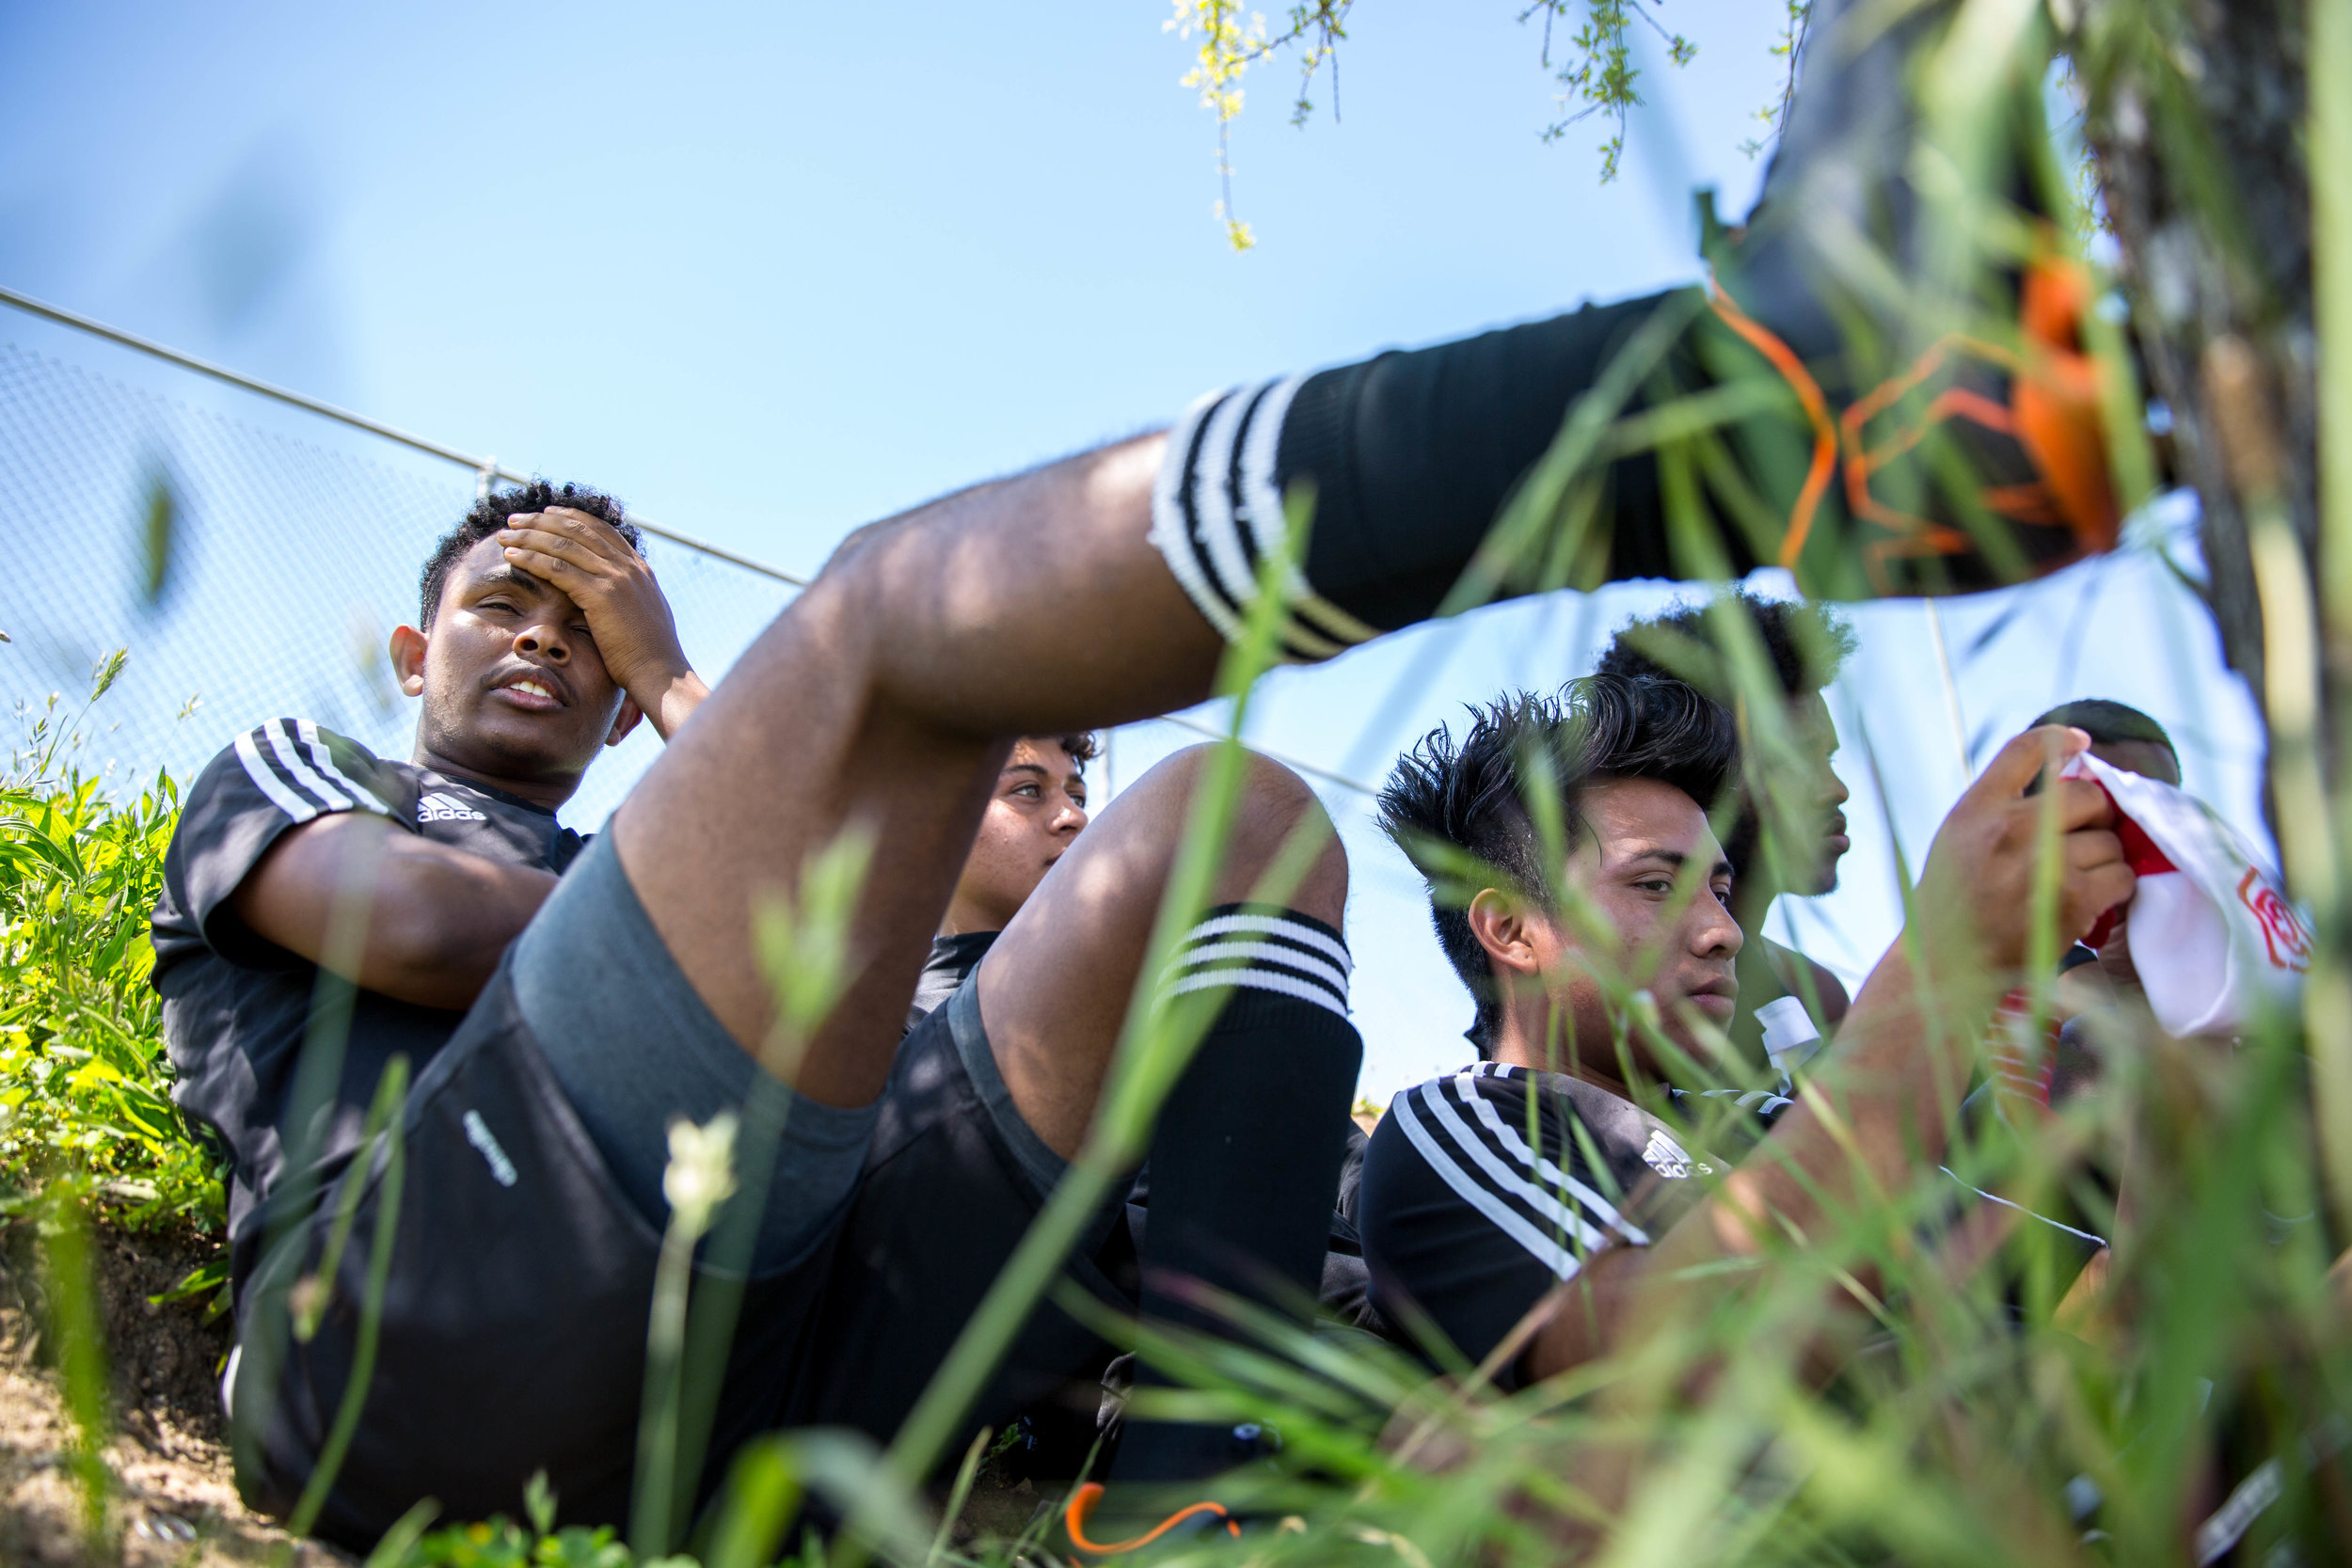 Originally from Eritrea, Africa, Oakland International High School senior Merhawi Beyene rests after a soccer game on Saturday, April, 14, 2018.